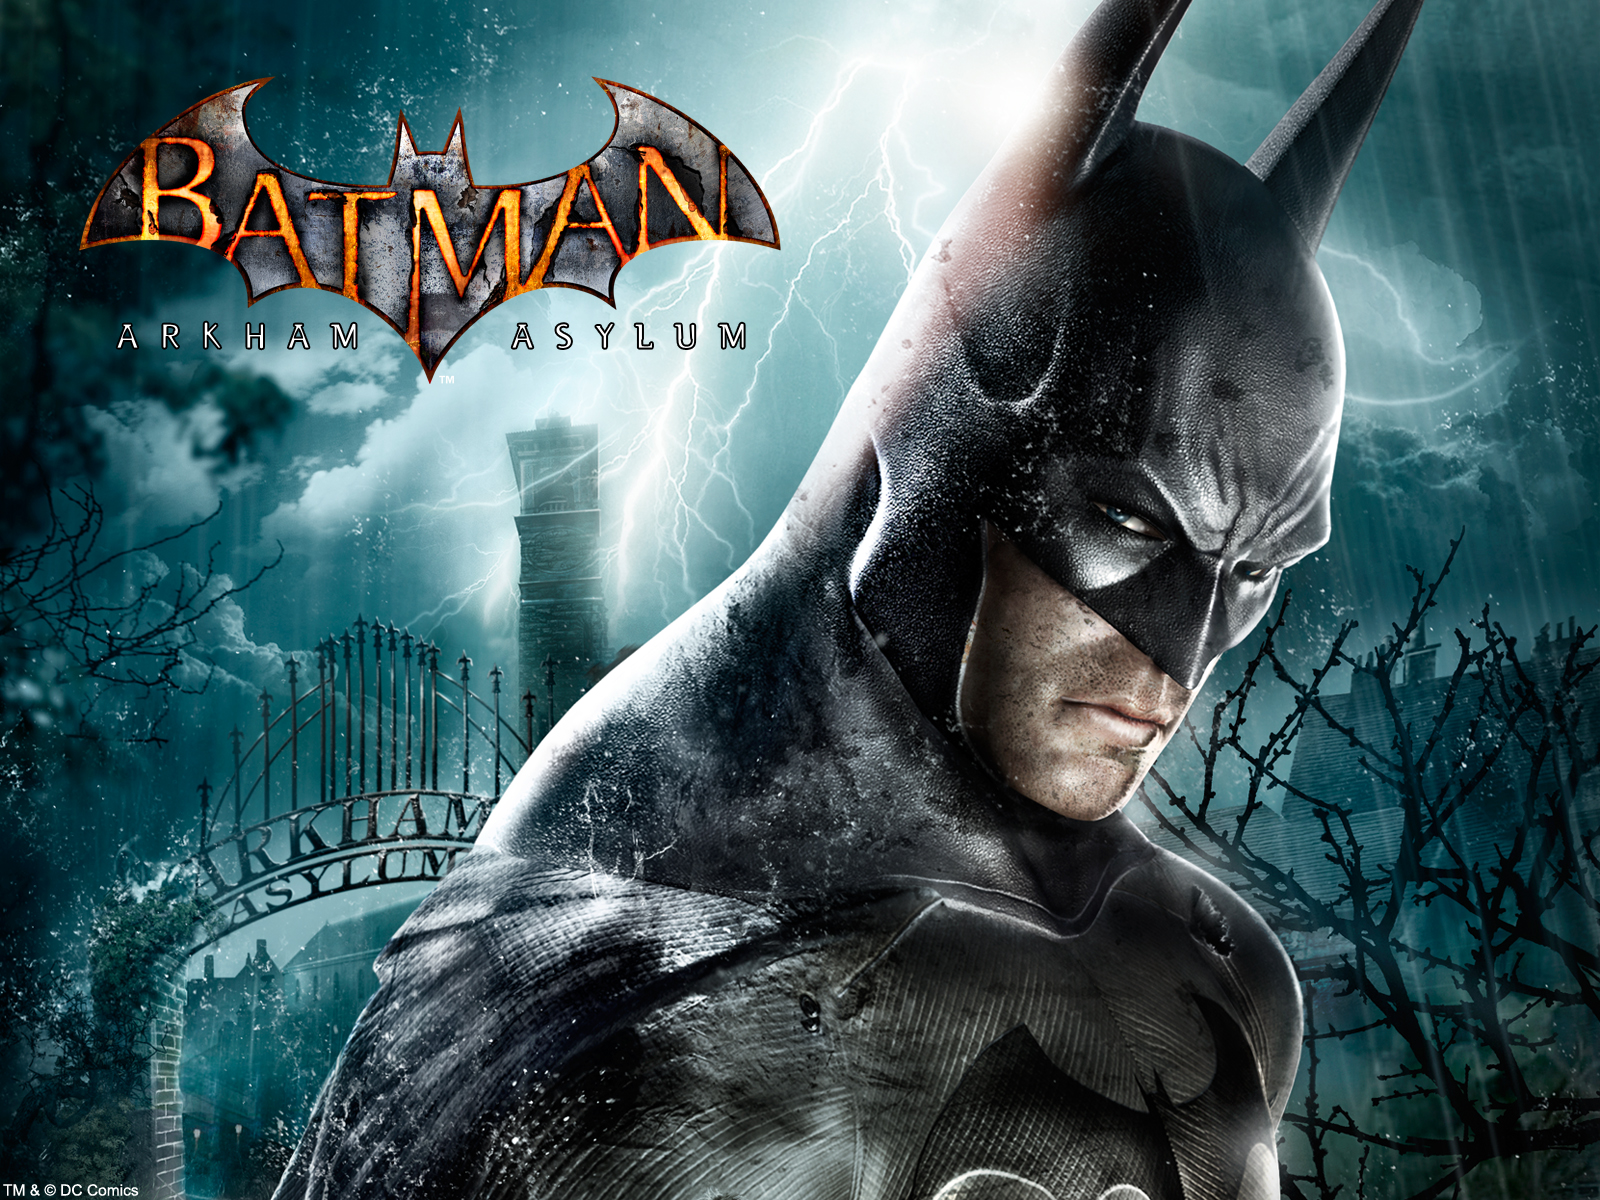 Batman Arkham Asylum desktop wallpaper 1600x1200